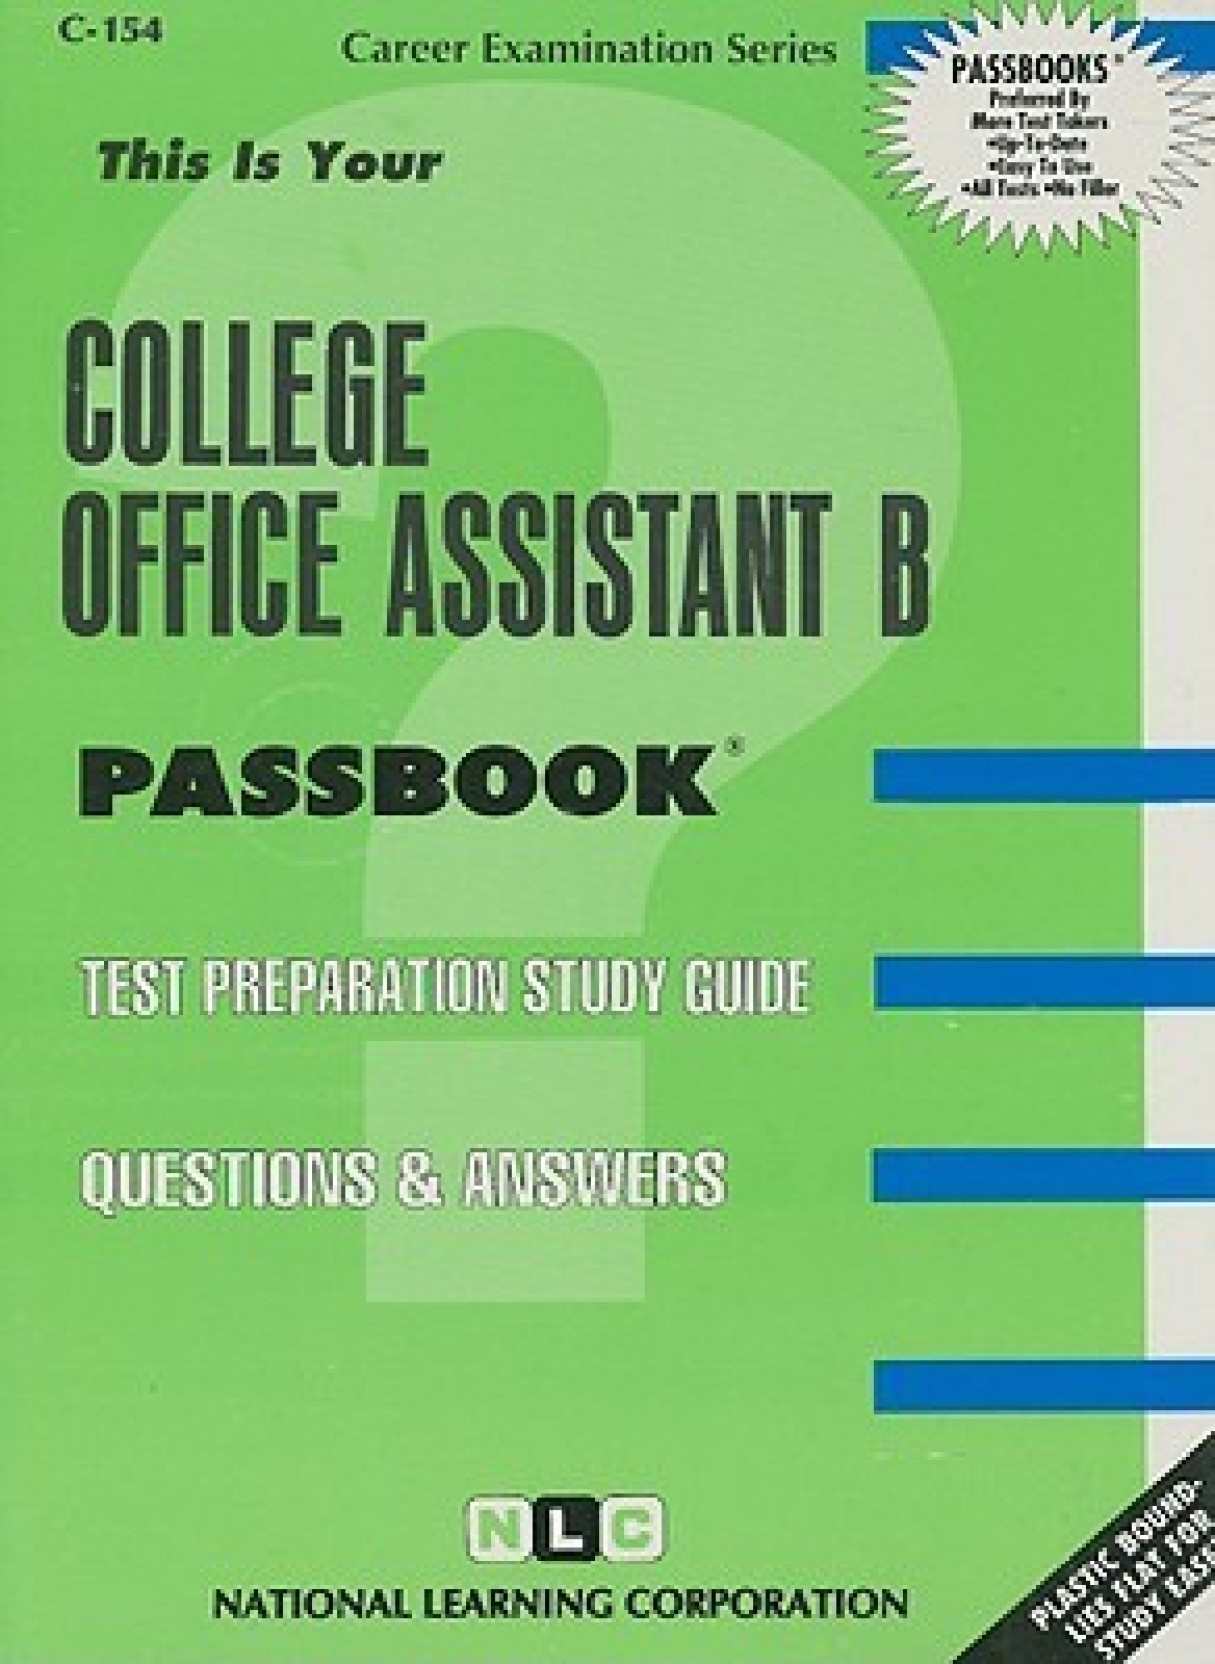 College Office Assistant B (Career Examination Passbooks). Share